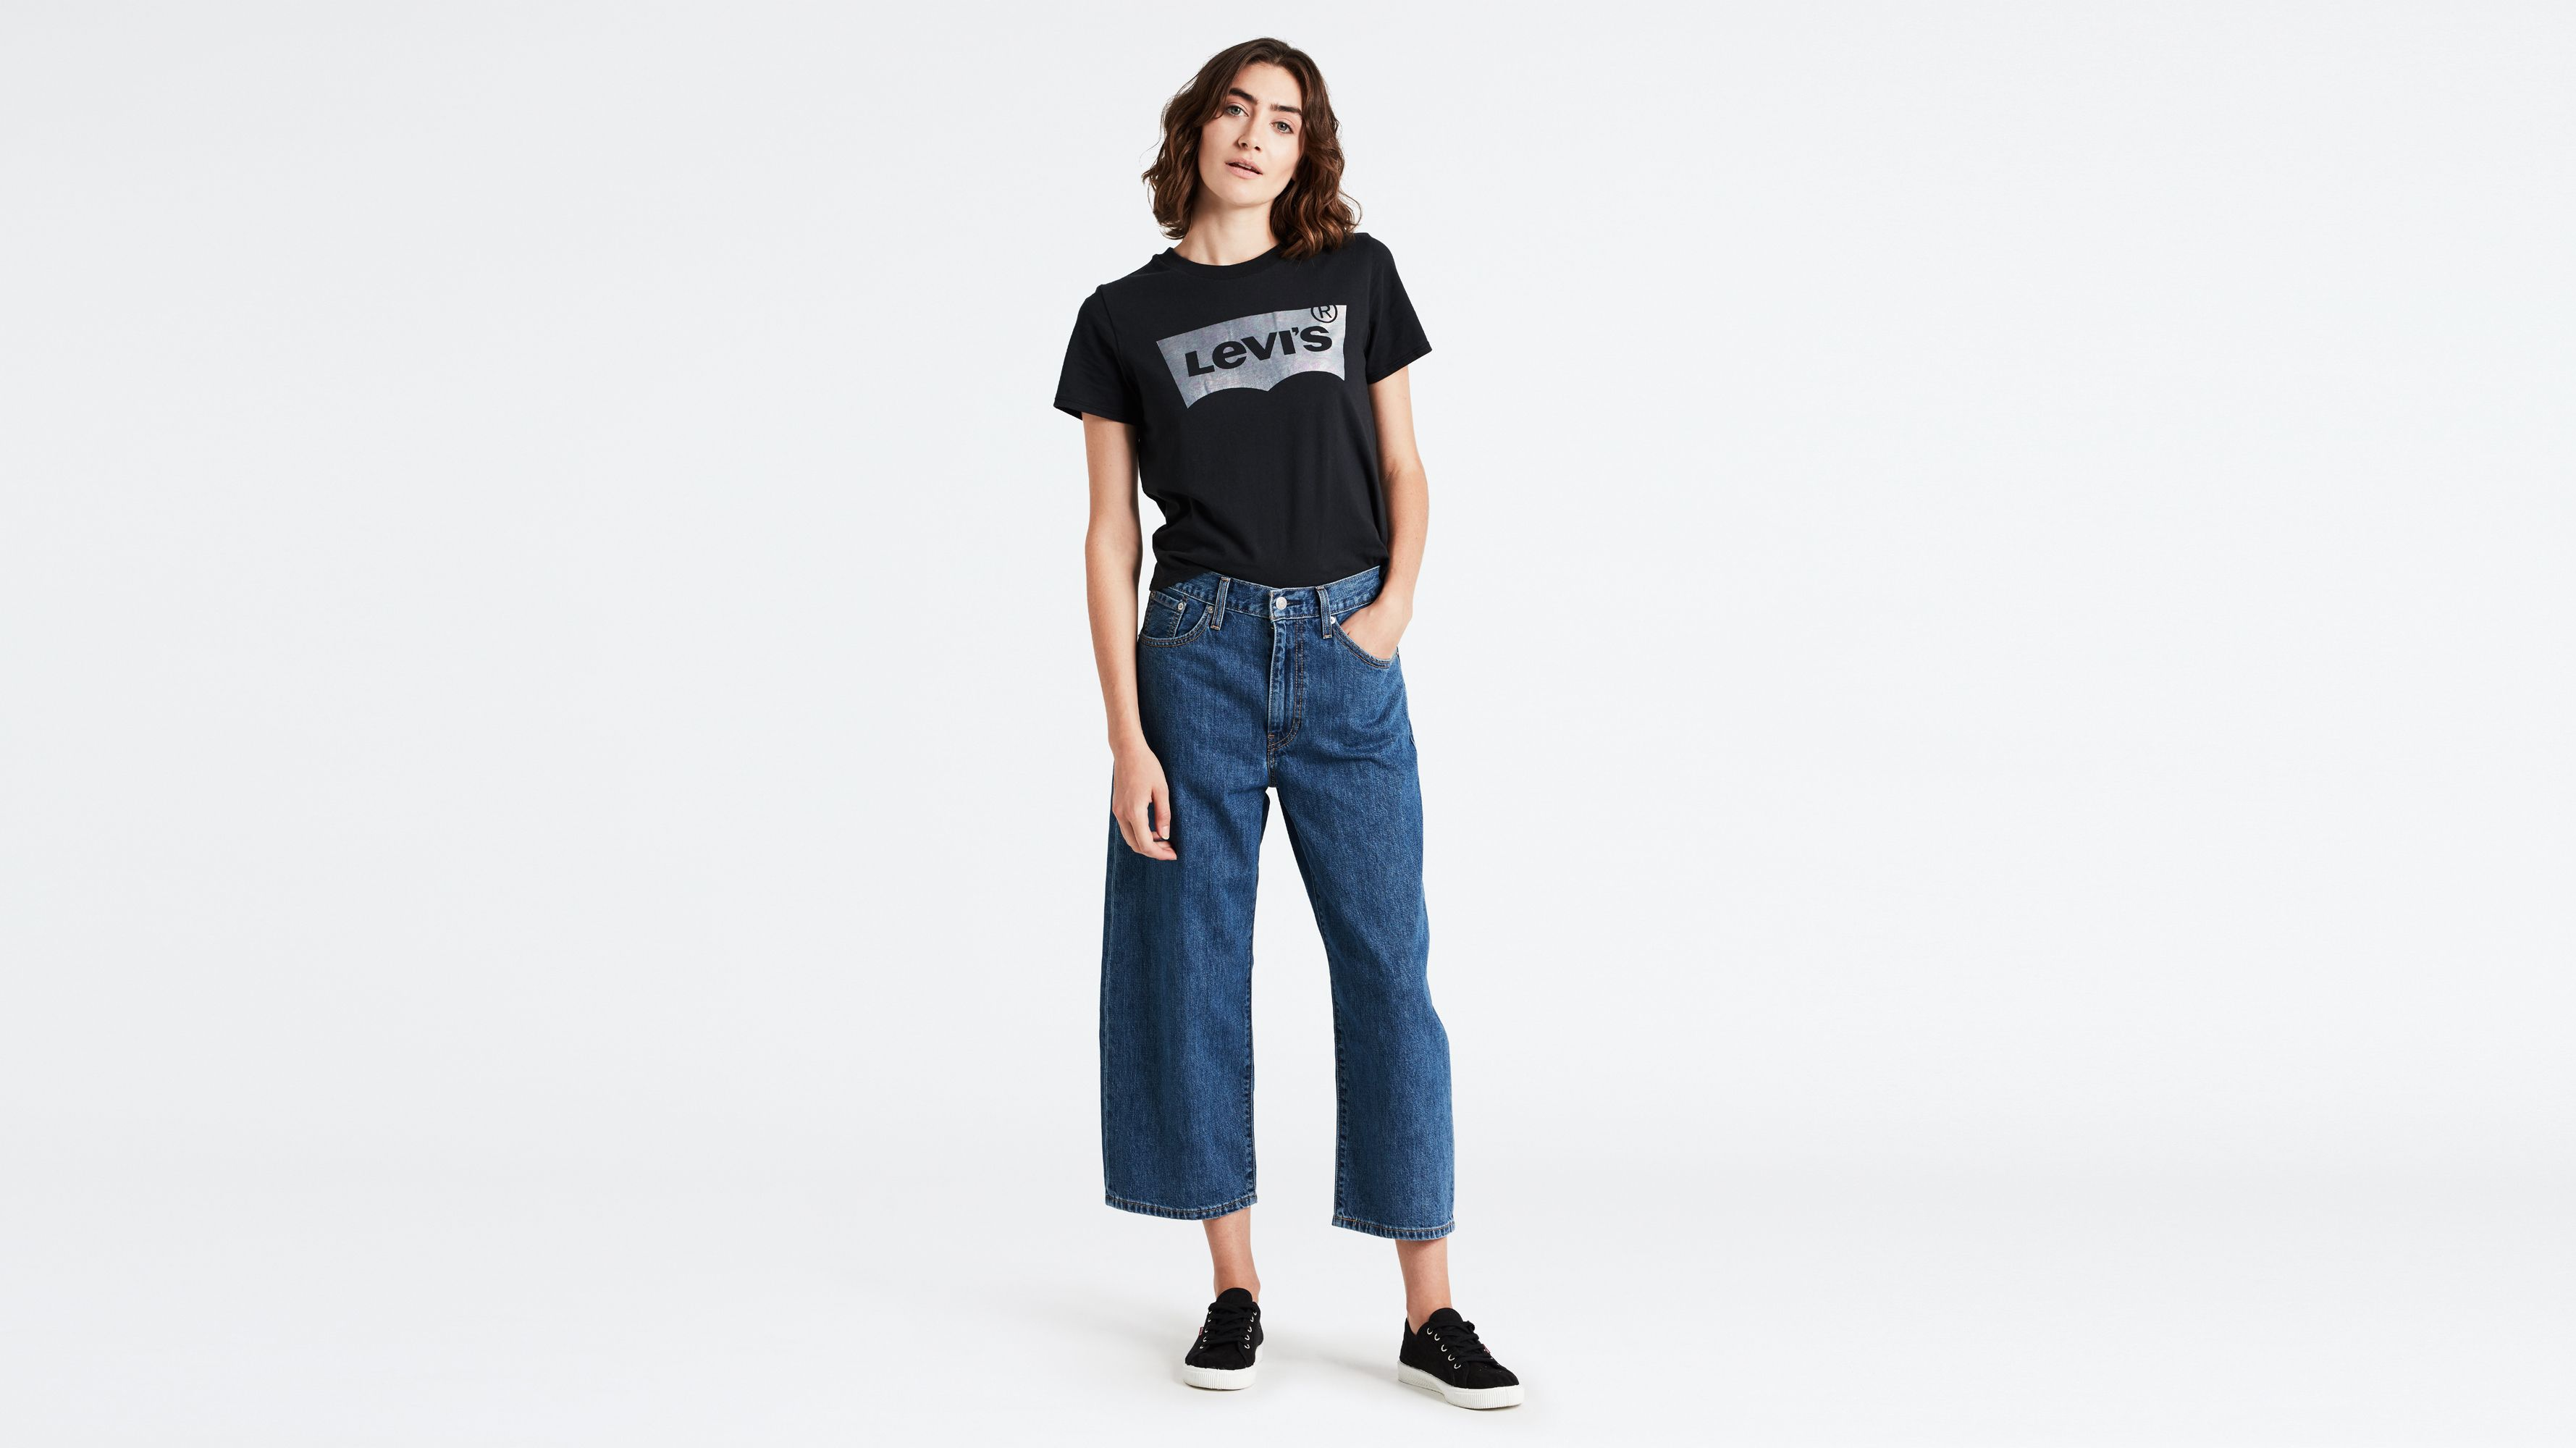 Fr Baggy Jeans Cropped Fursfqxwz Femme Collections Levi's® oxBerdC